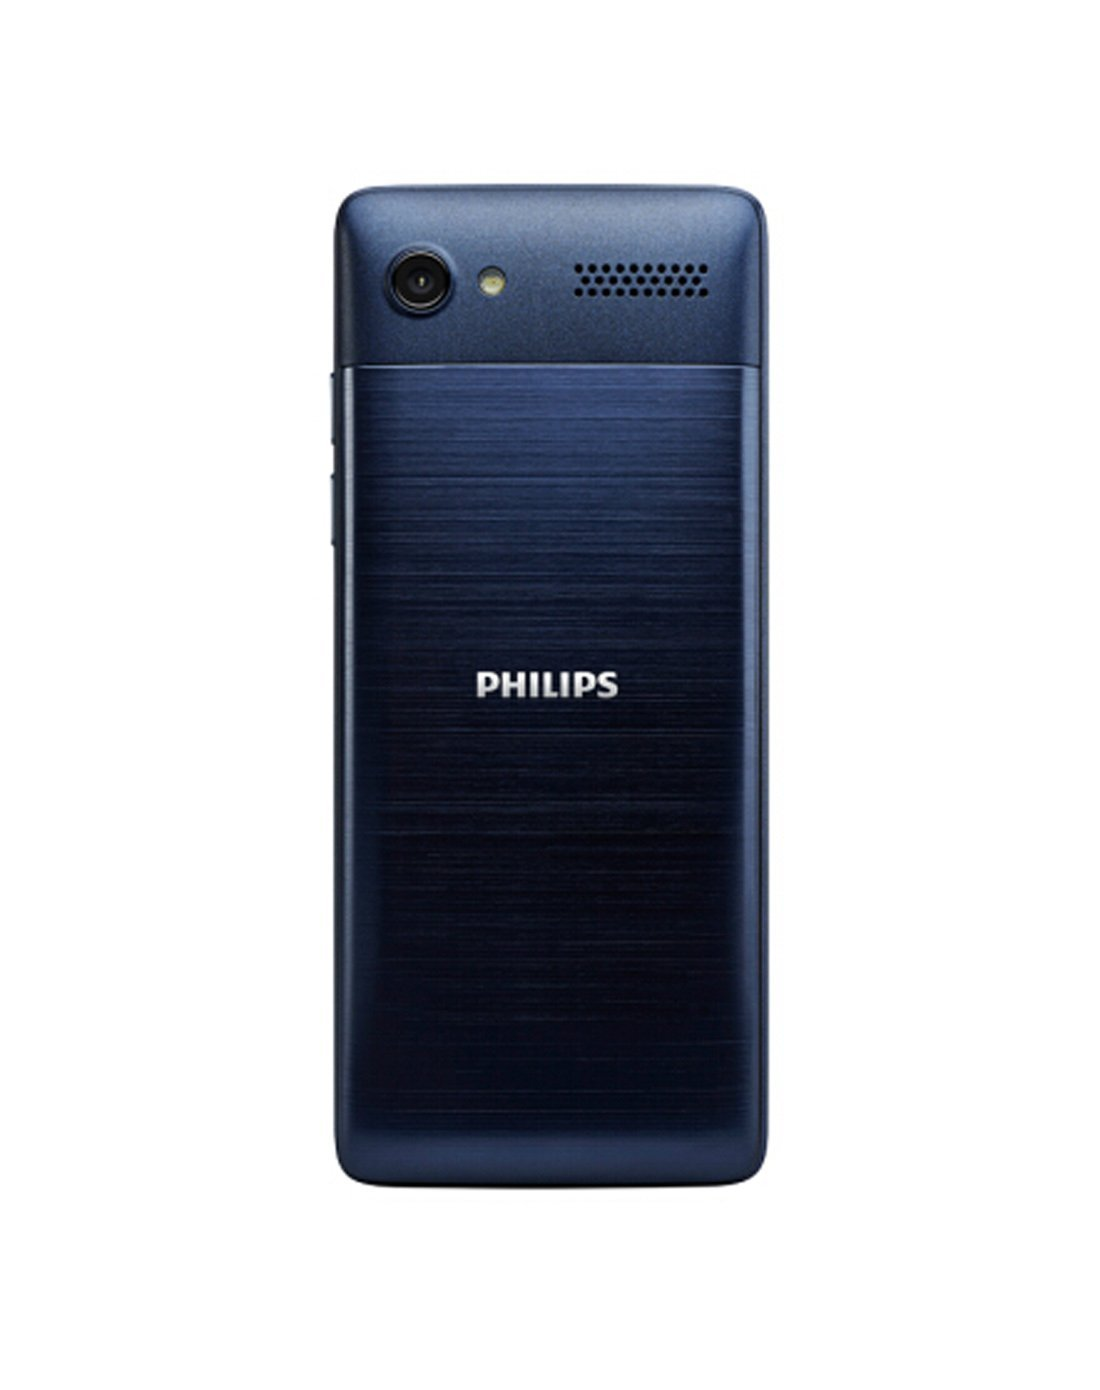 Mobile Communications Philips PHILIPS E571 Navy Blue Mobile Unicom 2G business phone dual card dual